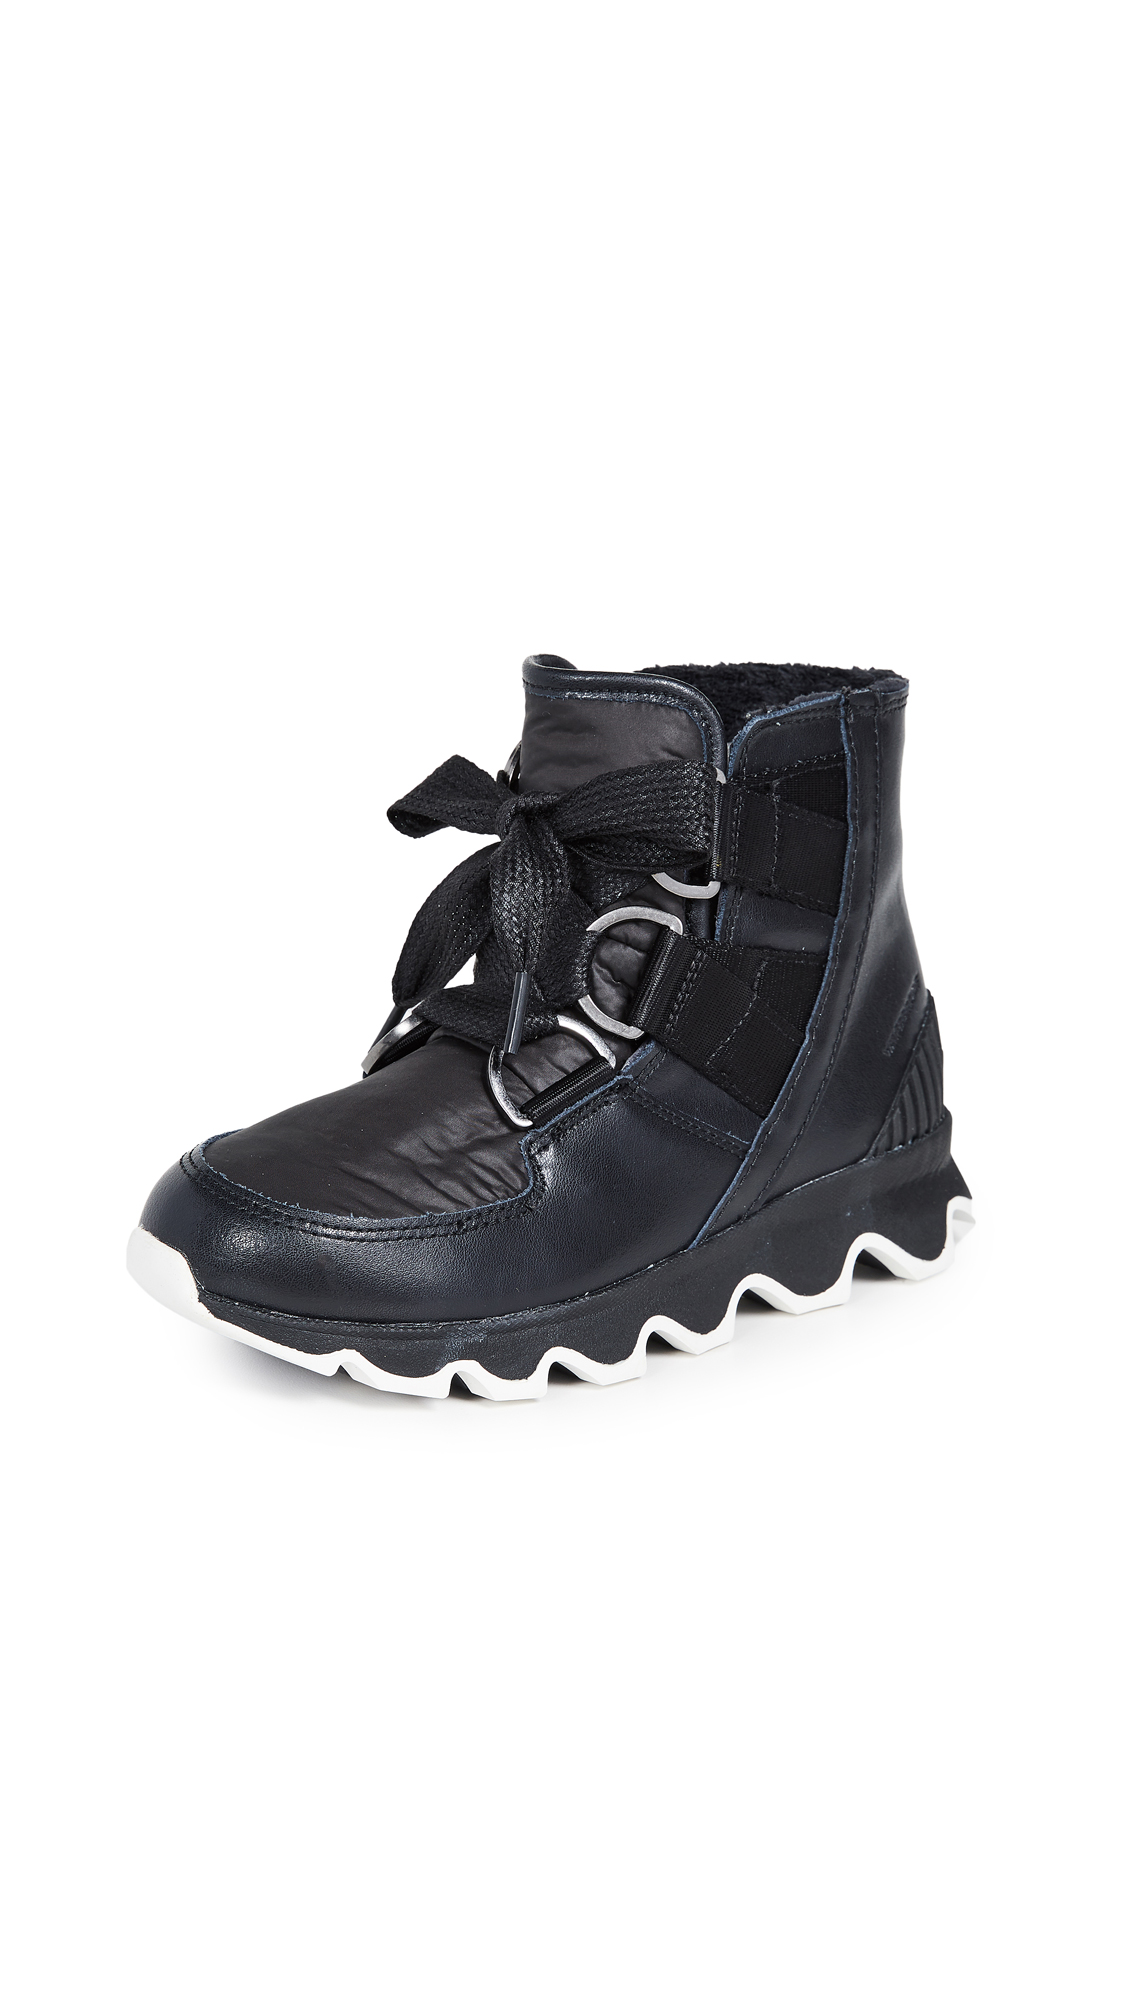 Sorel Kinetic Short Lace Up Booties - Black/White